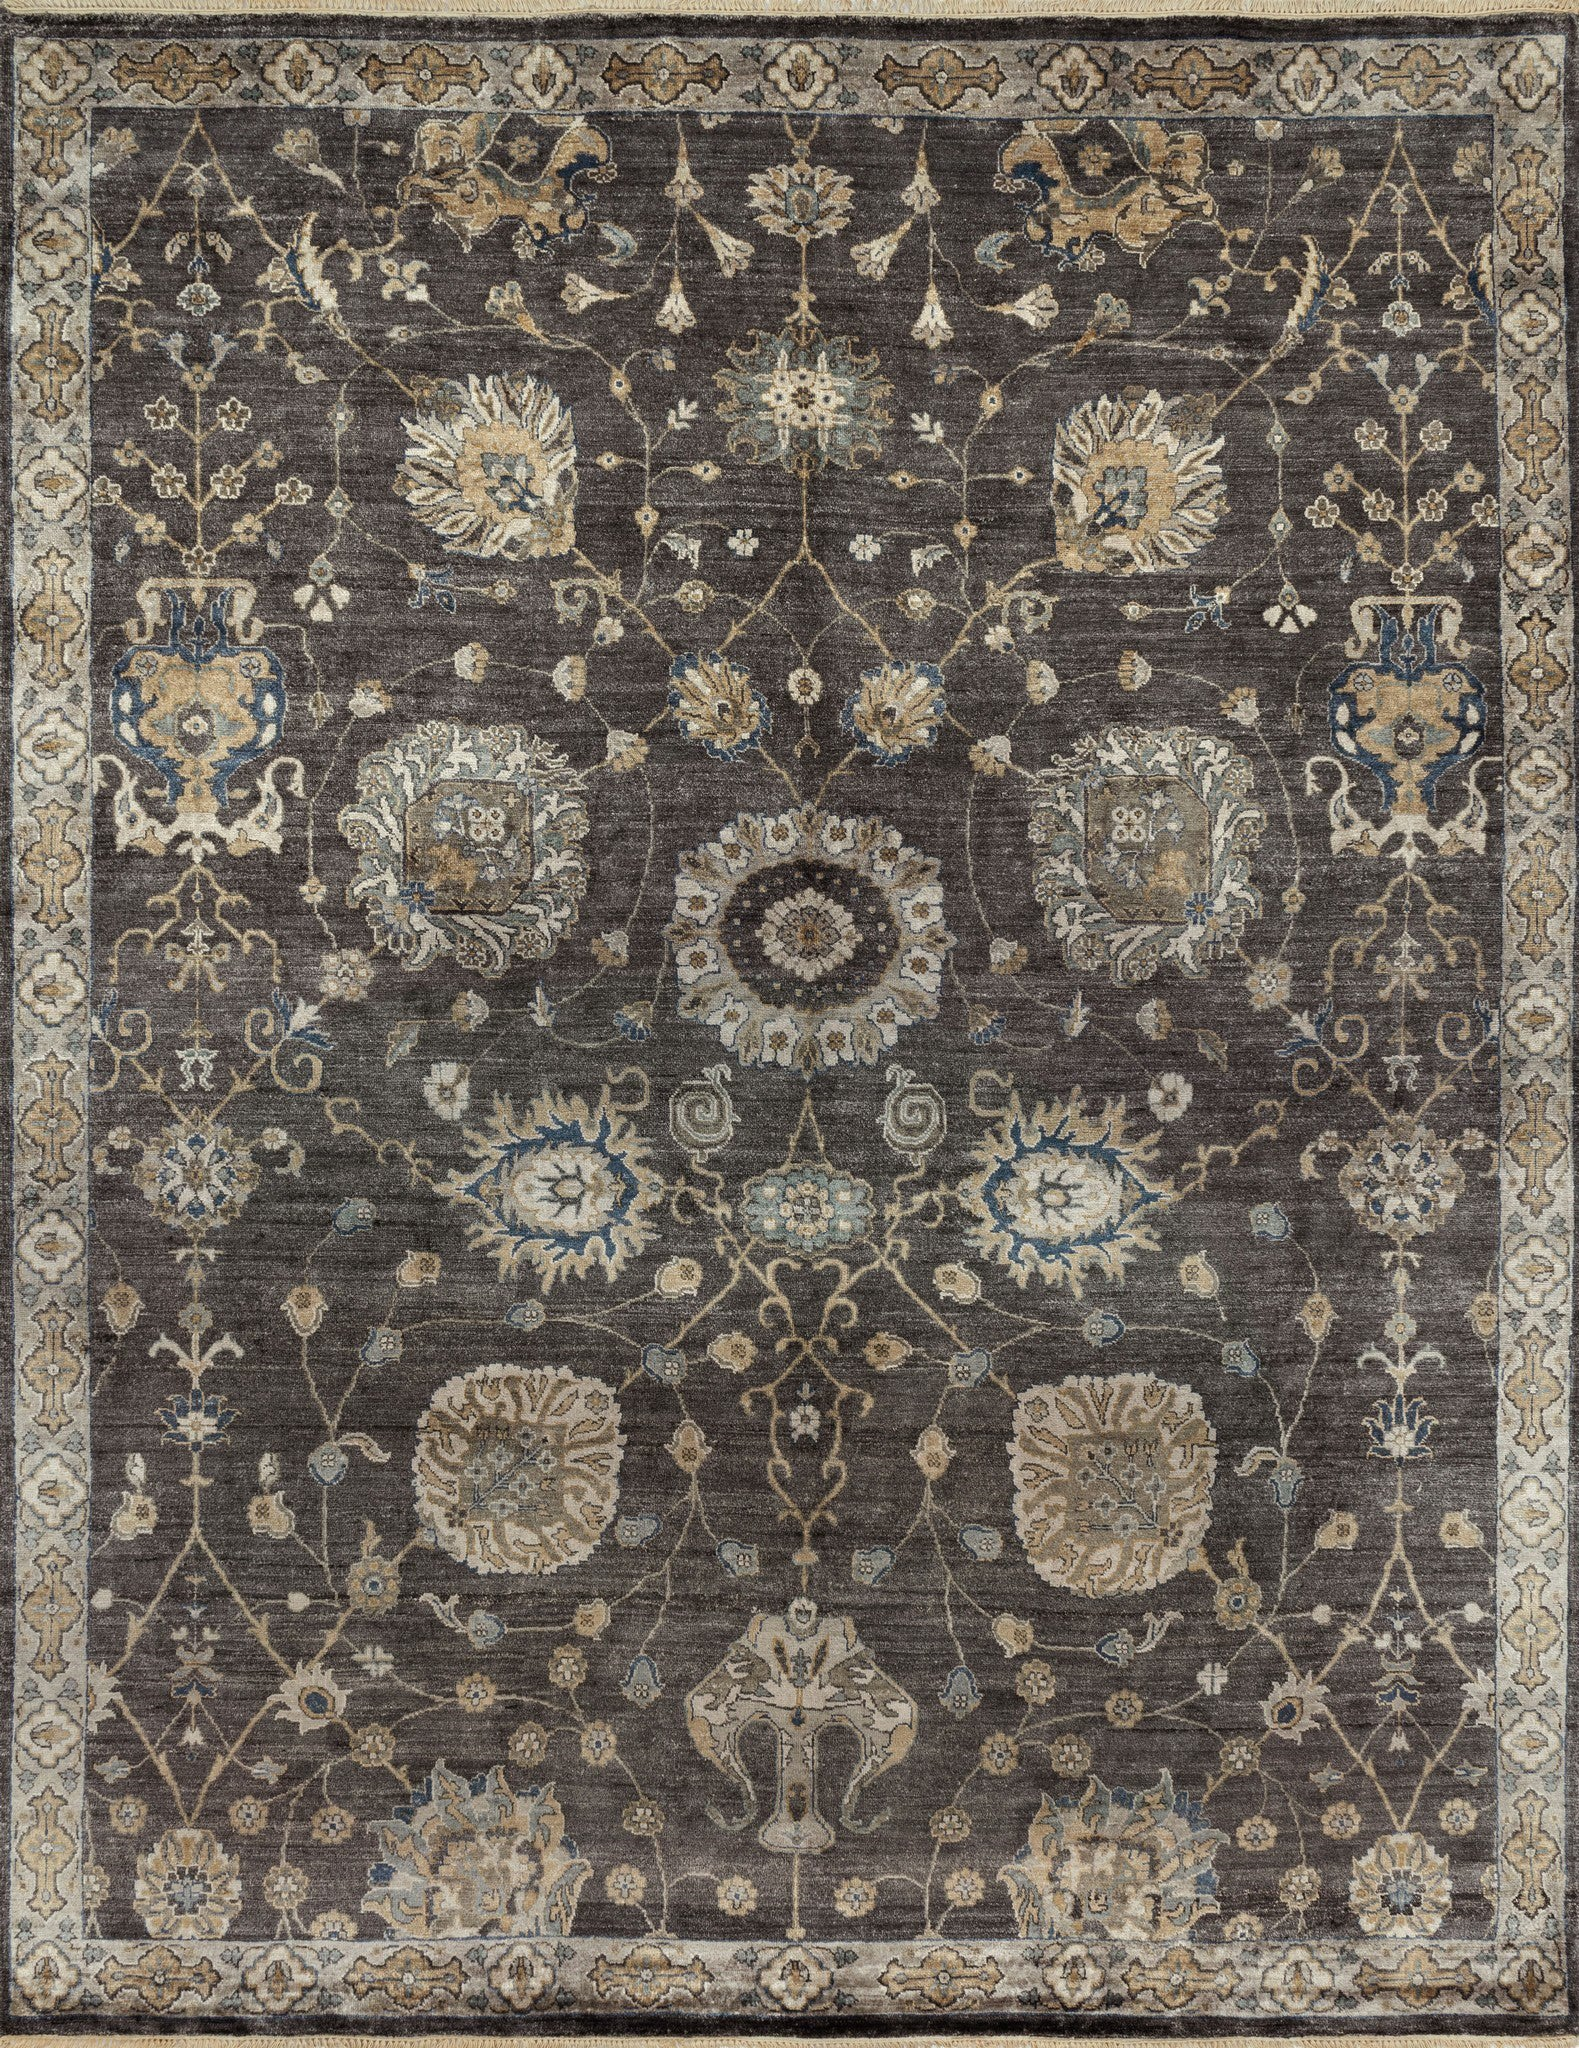 Loloi Kensington KG-05 Frost/Gray Area Rug by Henrietta Spencer-Churchill main image